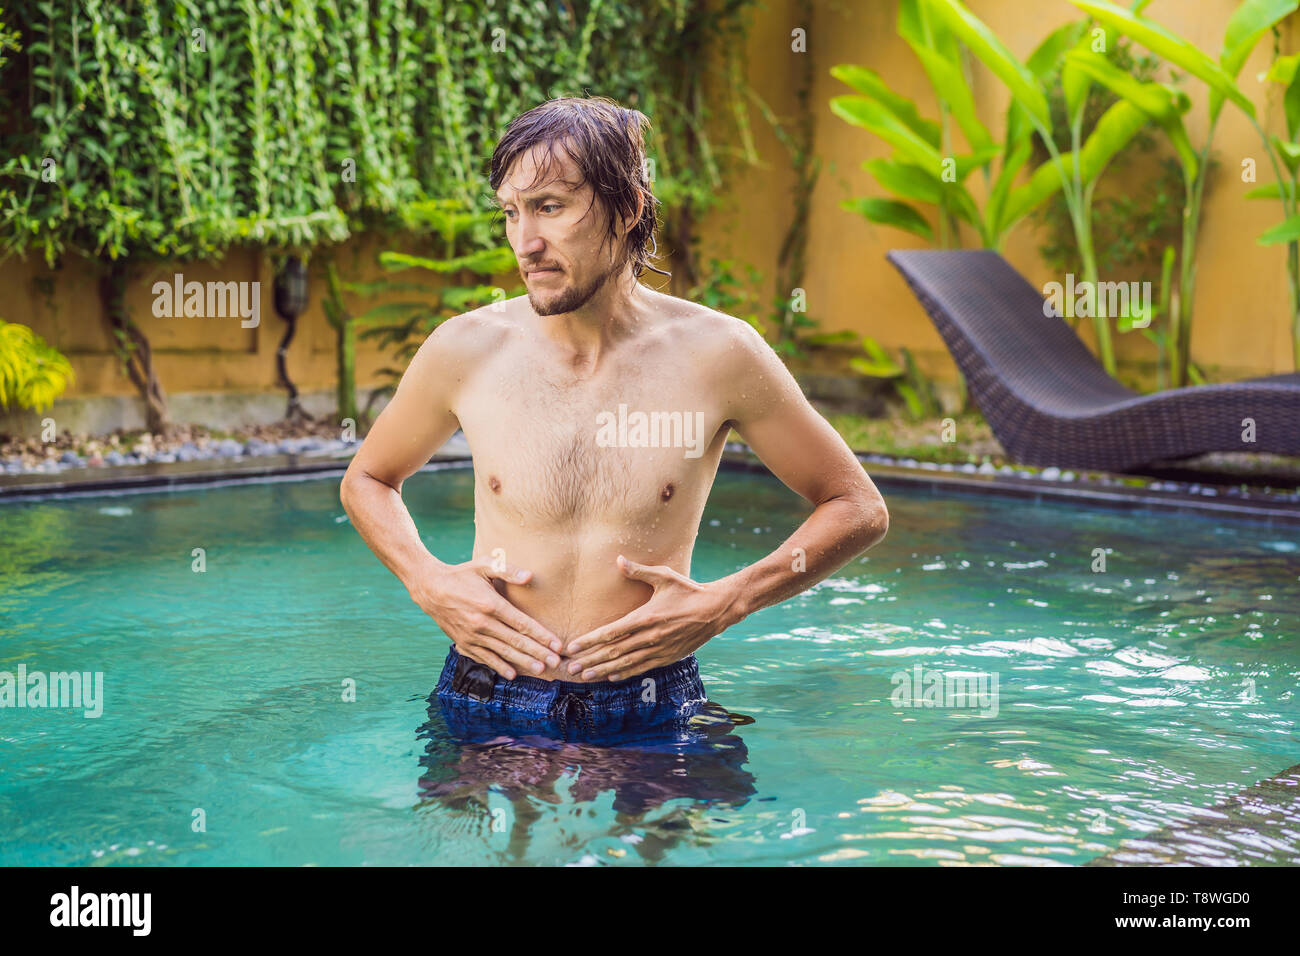 The man's stomach hurts after the pool - Stock Image